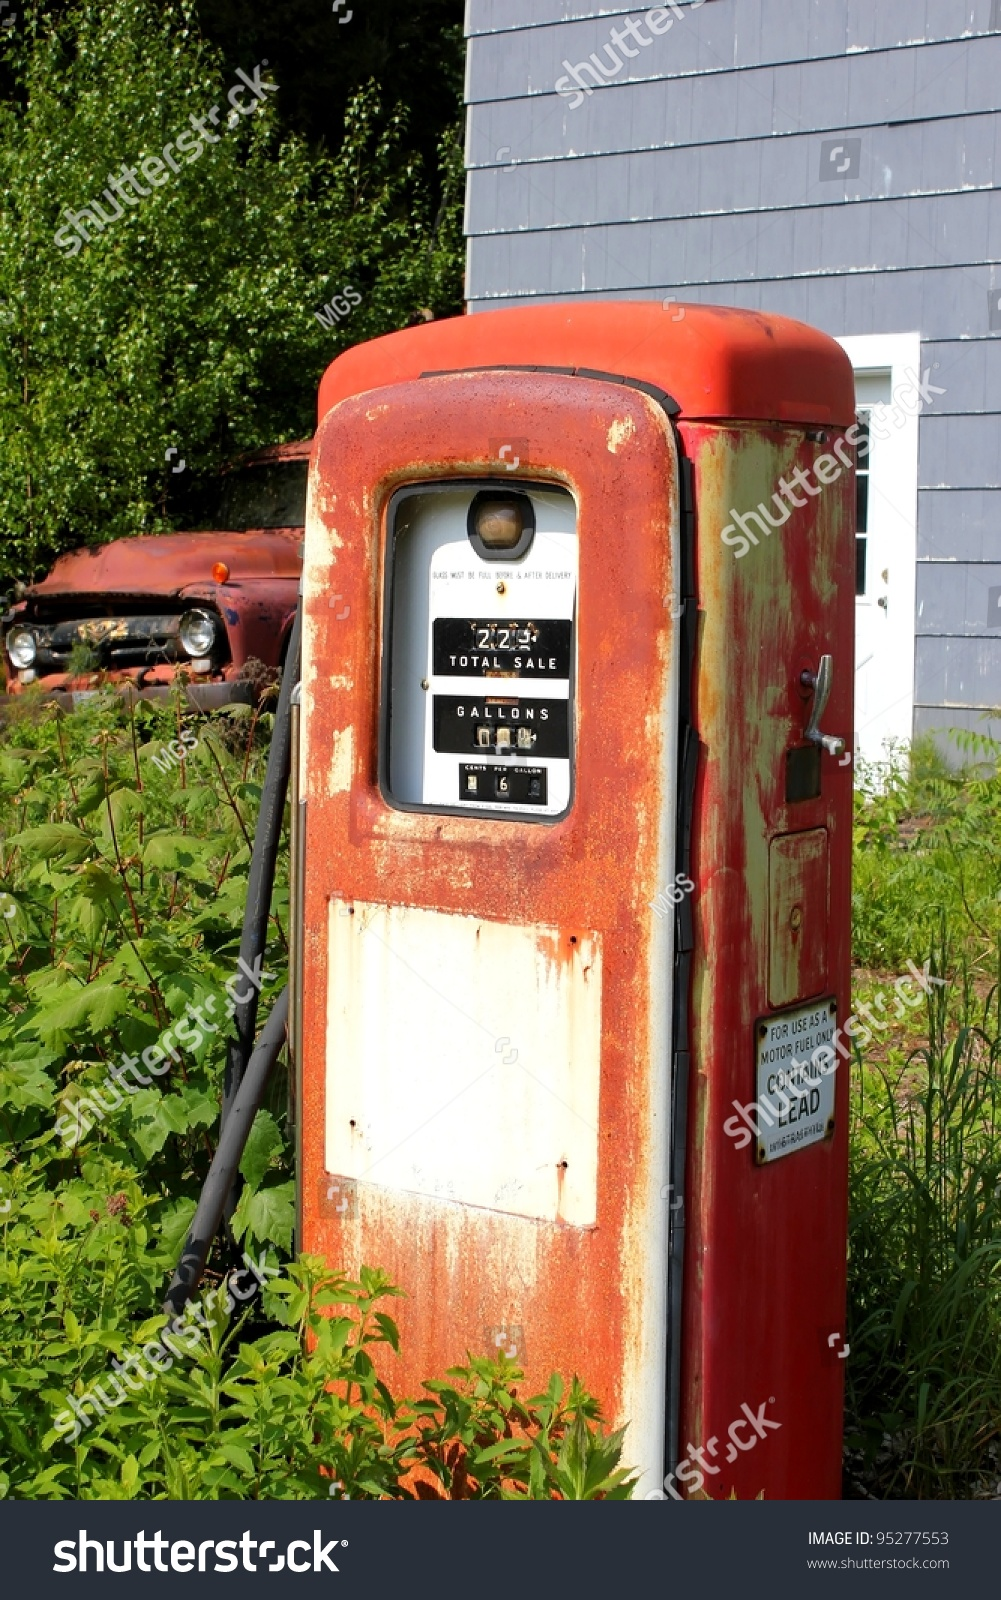 Vintage Gas Pump Truck Abandoned Location Stock Photo ...